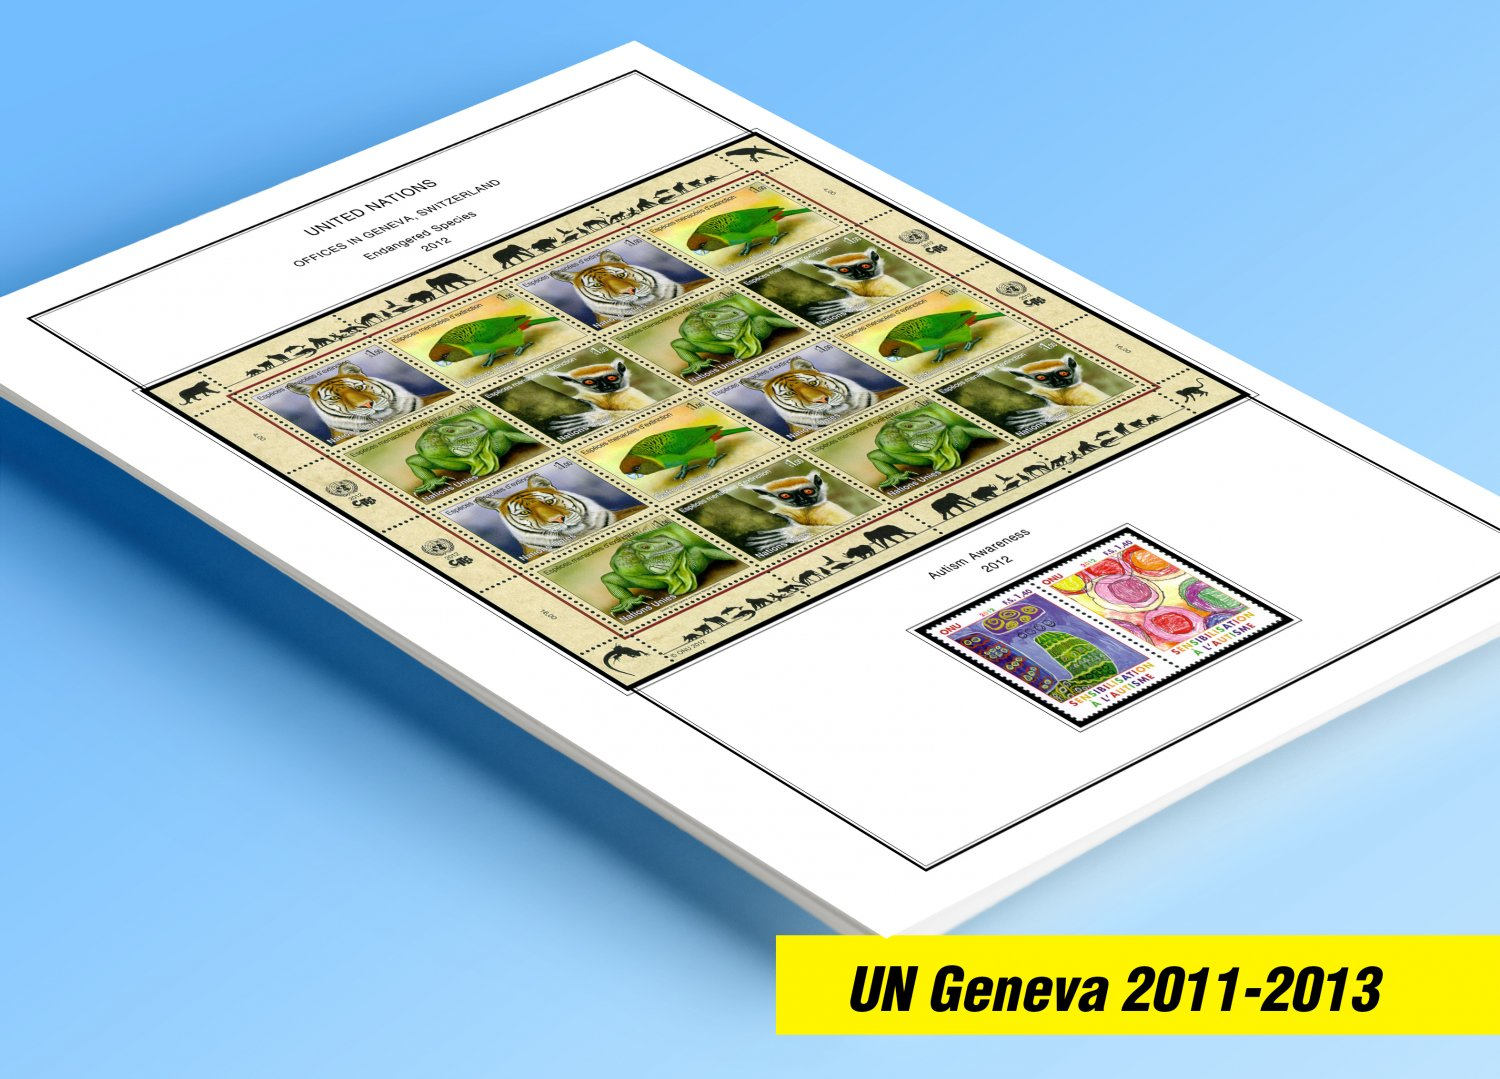 COLOR PRINTED UNITED NATIONS - GENEVA OFFICES  2011-2013 STAMP ALBUM PAGES (15 illustrated pages)